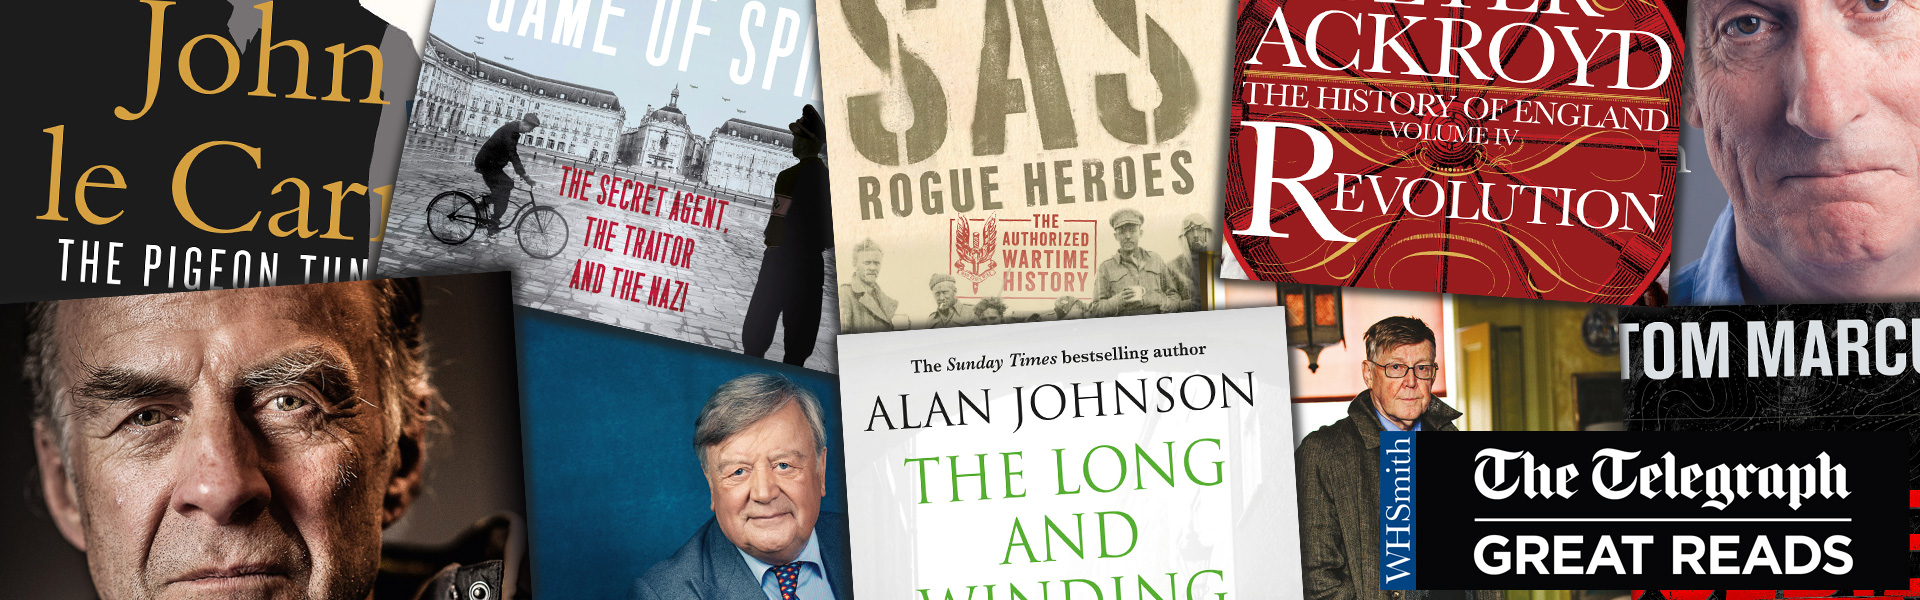 The Telegraph Great Reads Autumn 2016